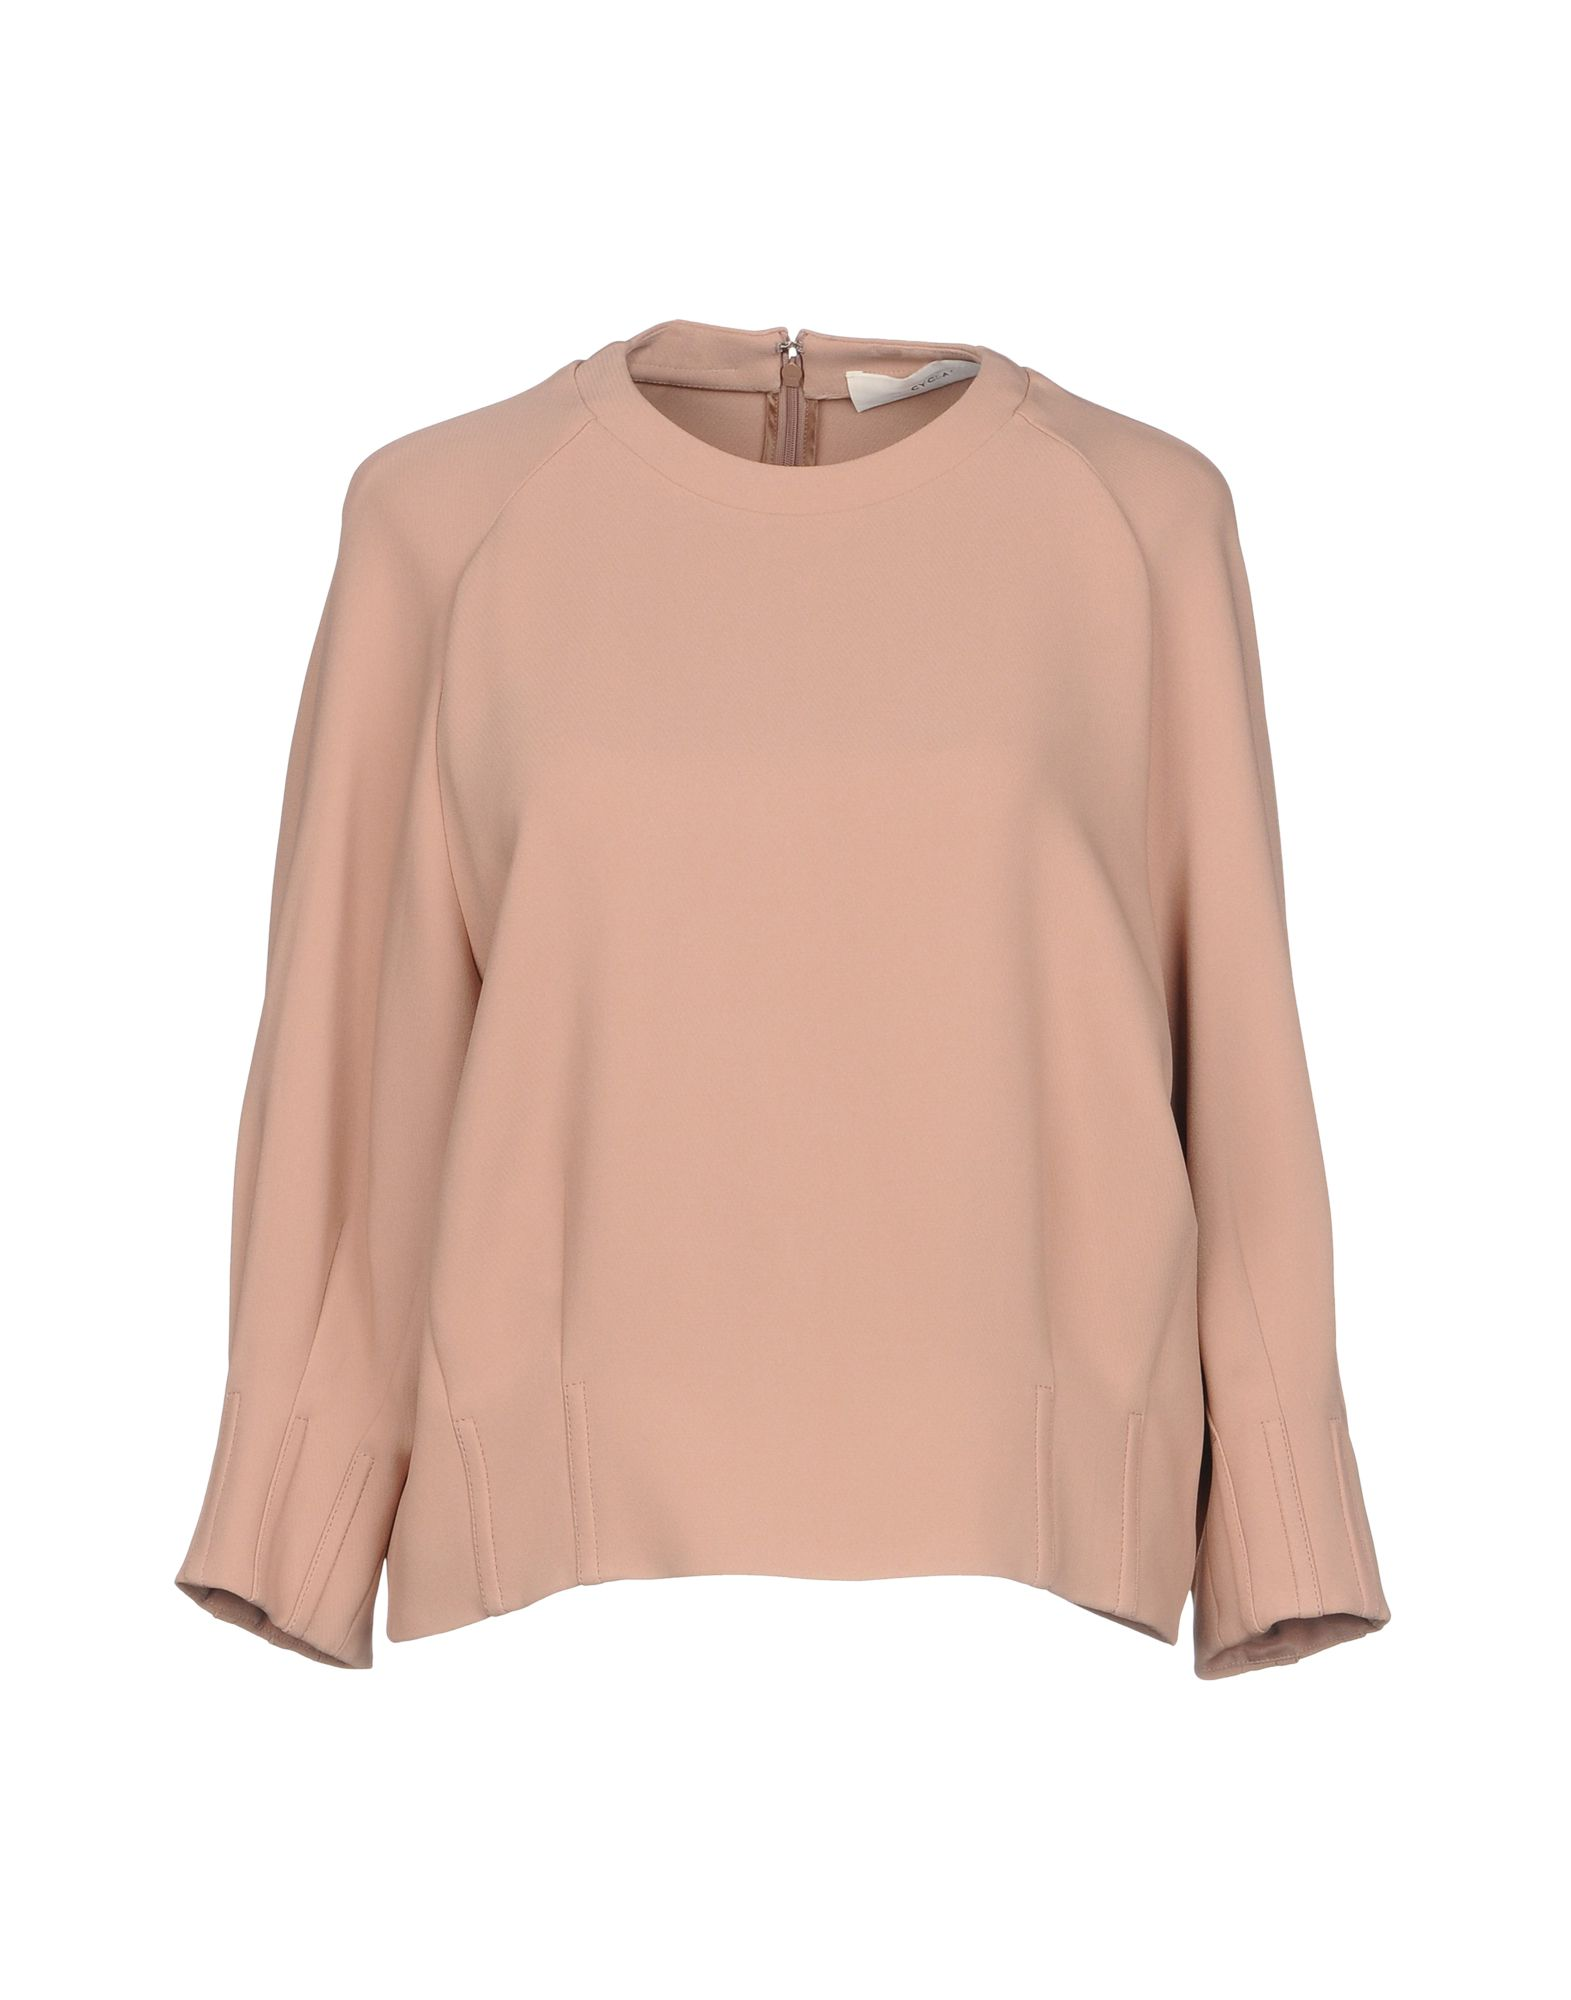 CYCLAS Blouse in Sand